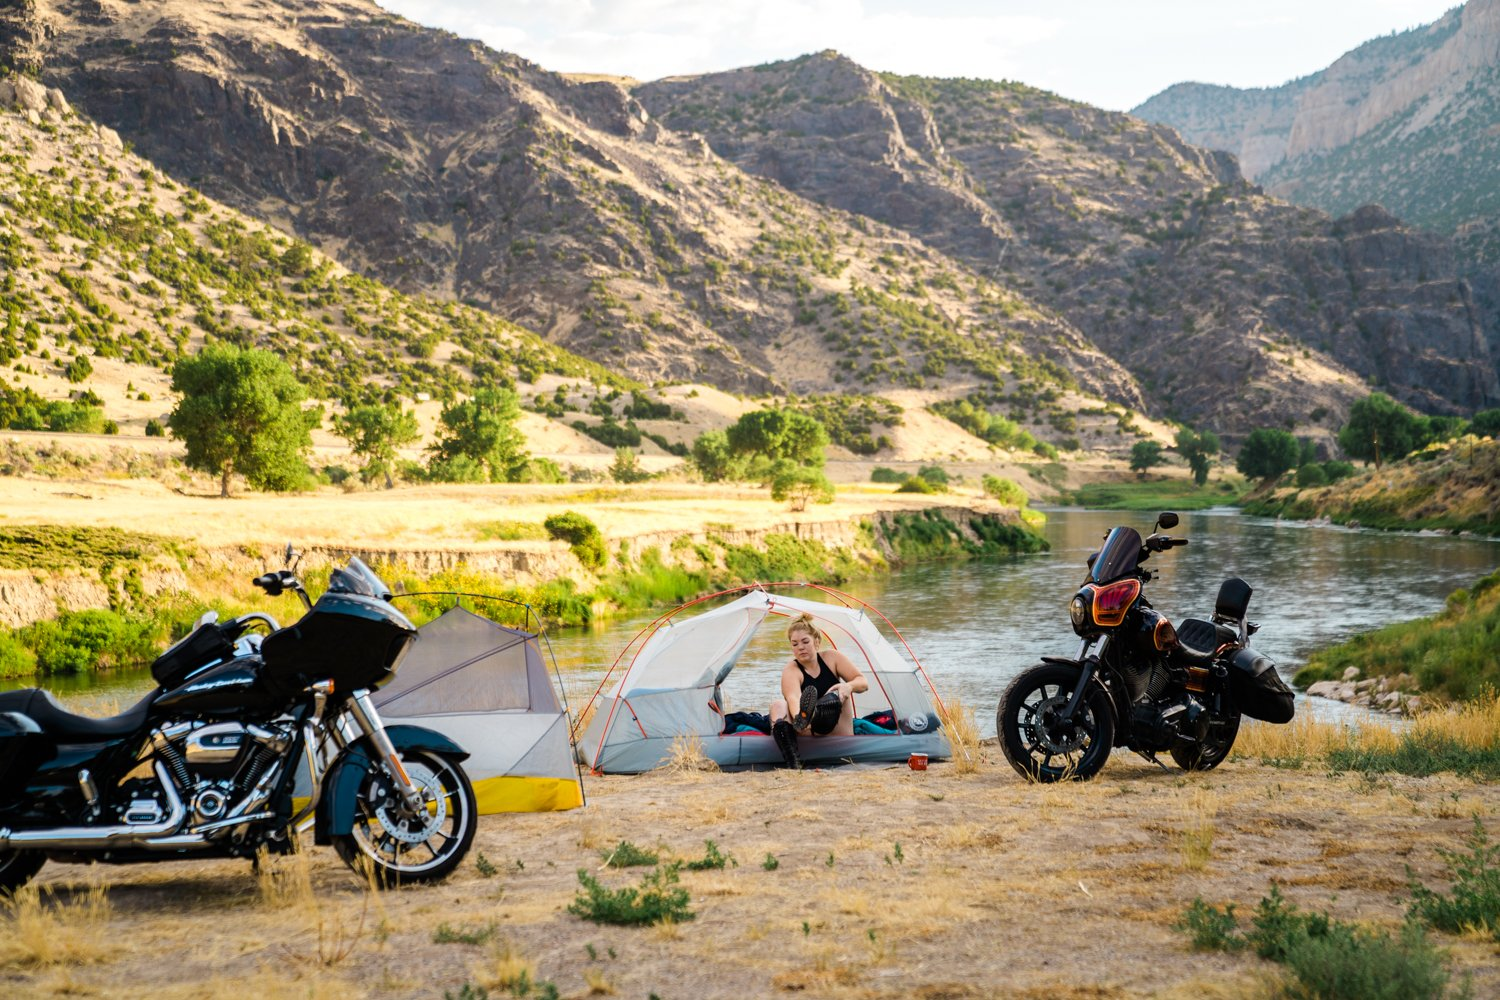 Motorcycle Camping: How to Find the Best Campsites